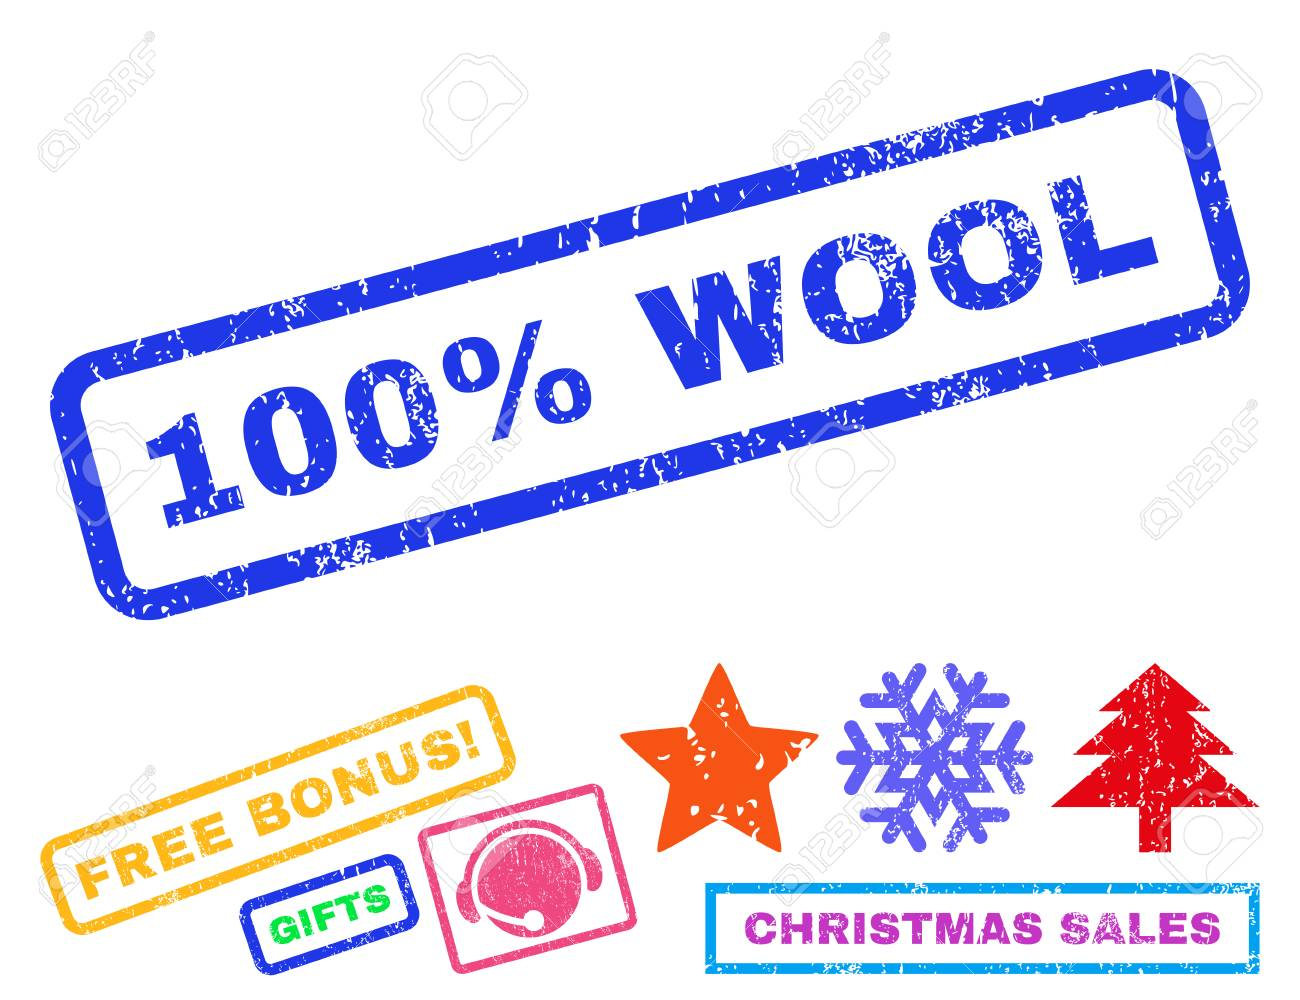 100 percent wool text rubber seal stamp watermark with additional 100 percent wool text rubber seal stamp watermark with additional bonus christmas symbols tag inside buycottarizona Image collections